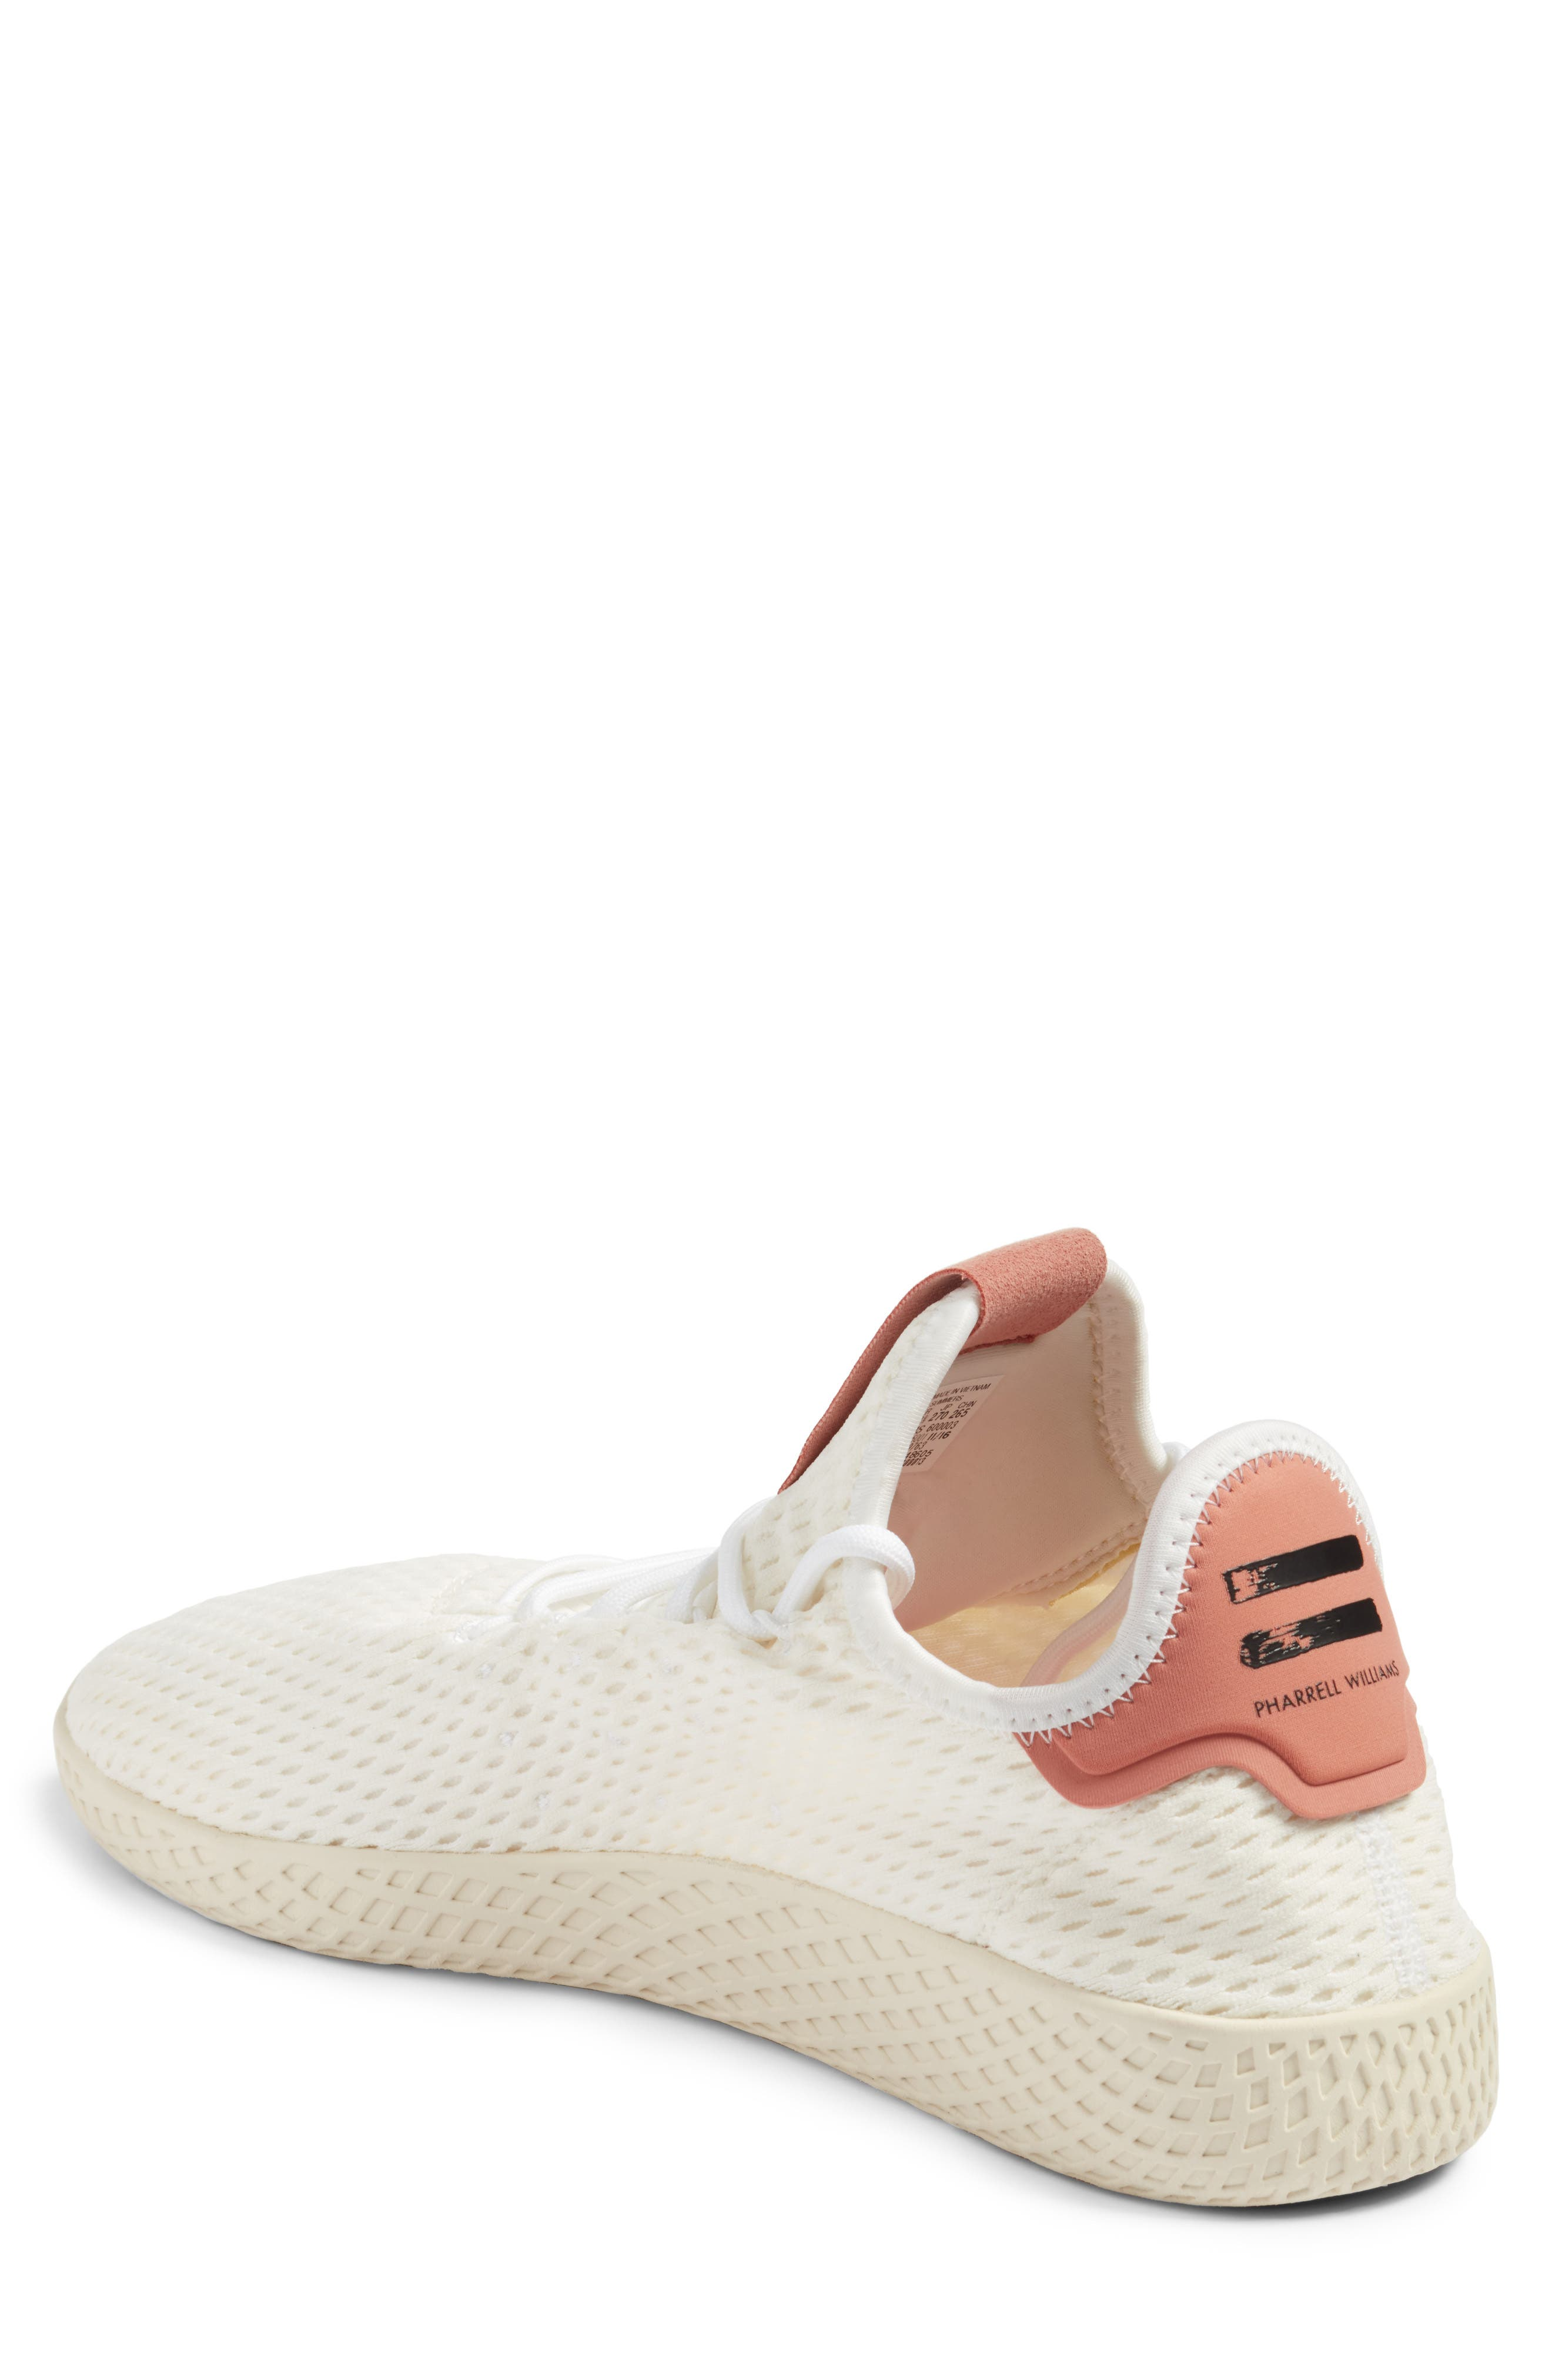 Pharrell Williams Tennis Hu Sneaker,                             Alternate thumbnail 2, color,                             White/ Pink